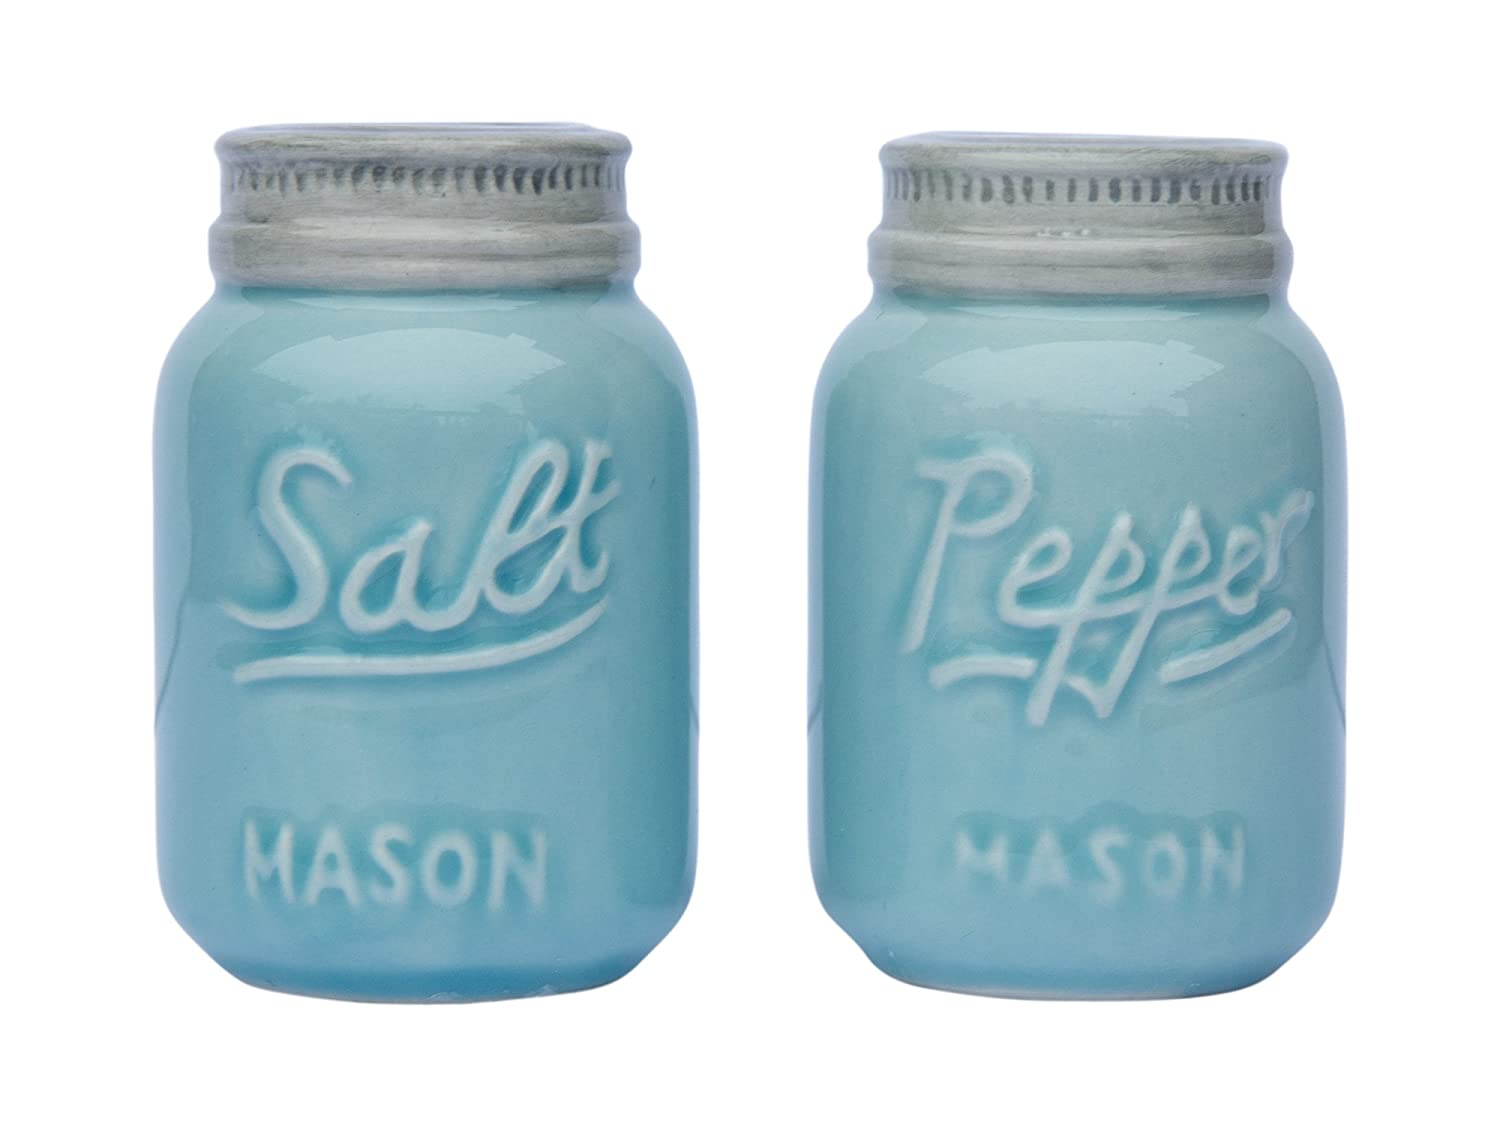 Vintage Mason Jar Salt Pepper Shakers Rustic Kitchen